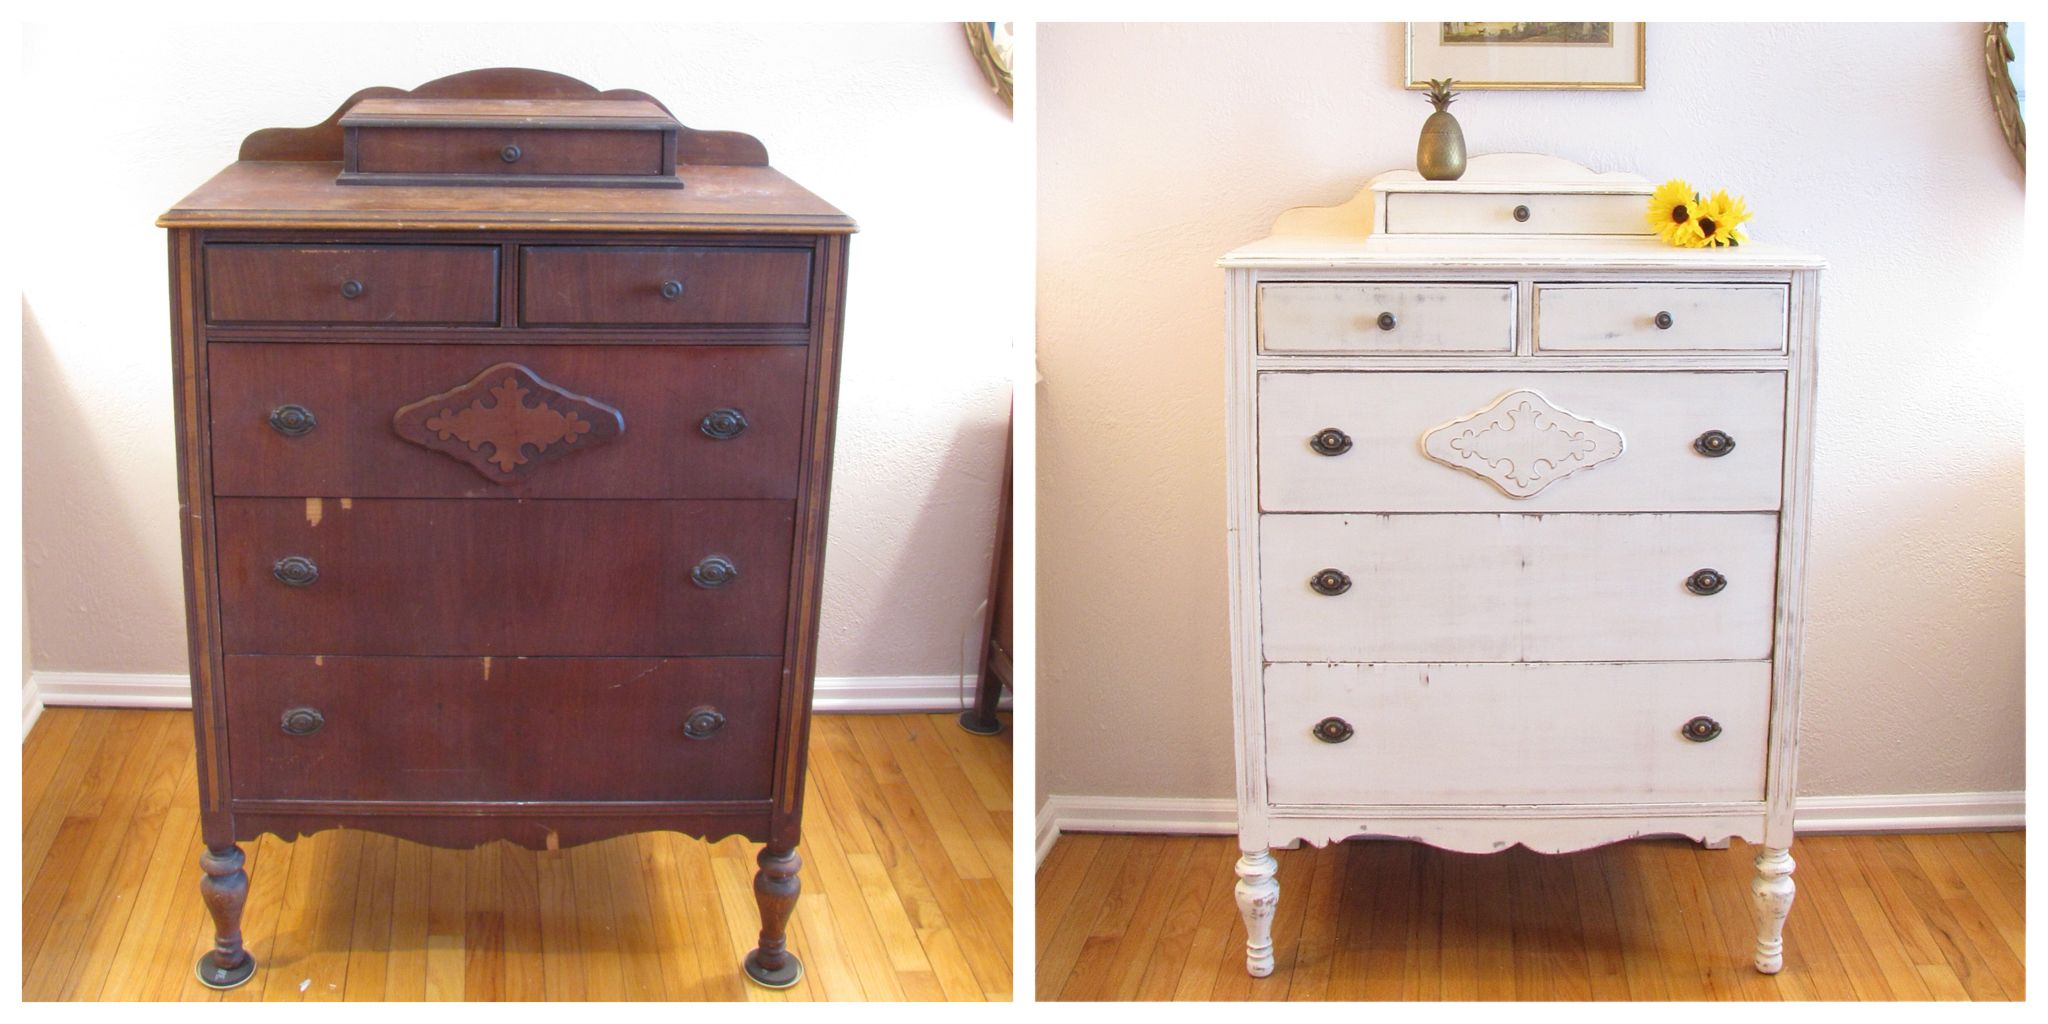 Tall Vintage Dresser Painted With Old White Chalk Paint By Annie Sloan Vintage Dressers White Chalk Paint Dresser